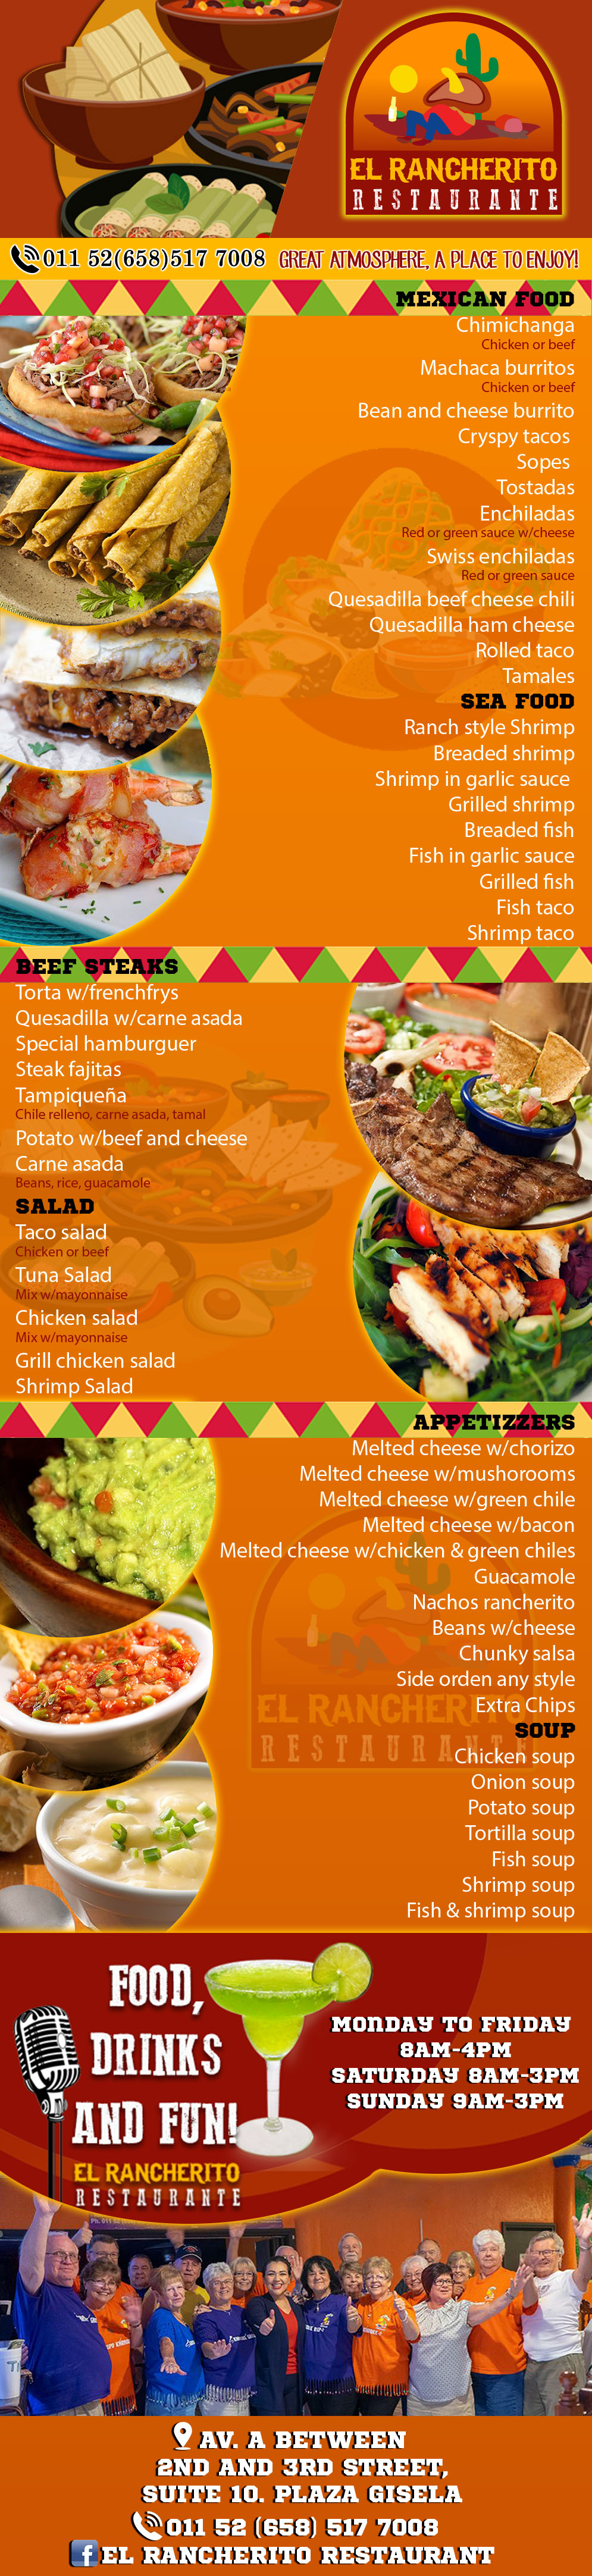 El Rancherito Restaurant in Algodones  in Algodones  Mexican Food.             comida restaurant foot tacos burros comida steak melted sheese chorizo folded taco enchilada margaritas beer drinks chimichanga machaca restaurante algodones mexican food beet steaks sea food soup drinks